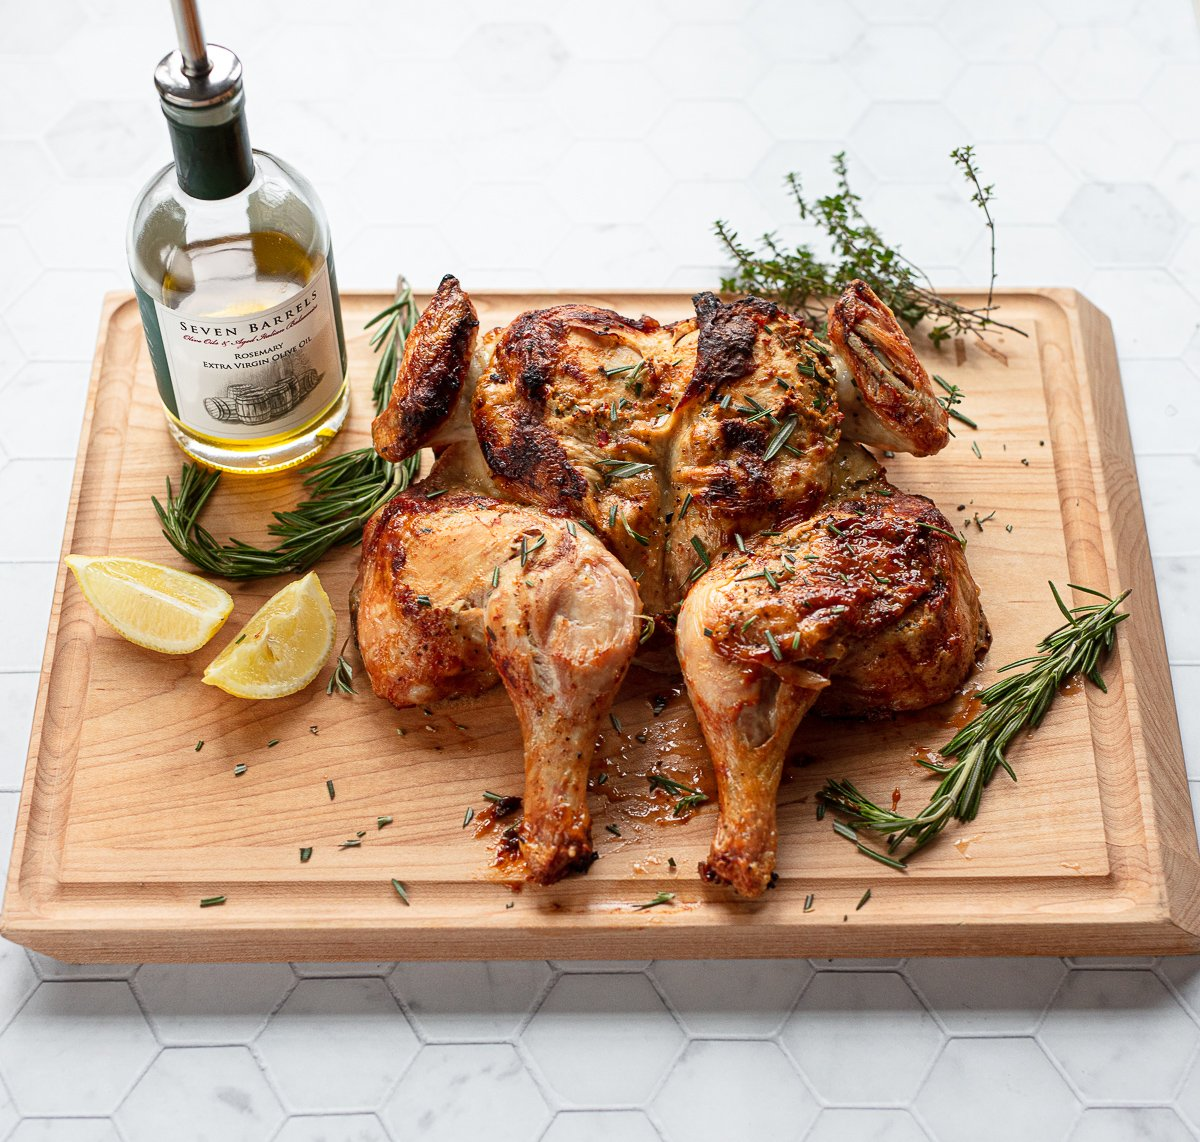 An image of a golden brown roasted butterflied chicken on a cutting board with wedges of lemon and rosemary herb sprigs.